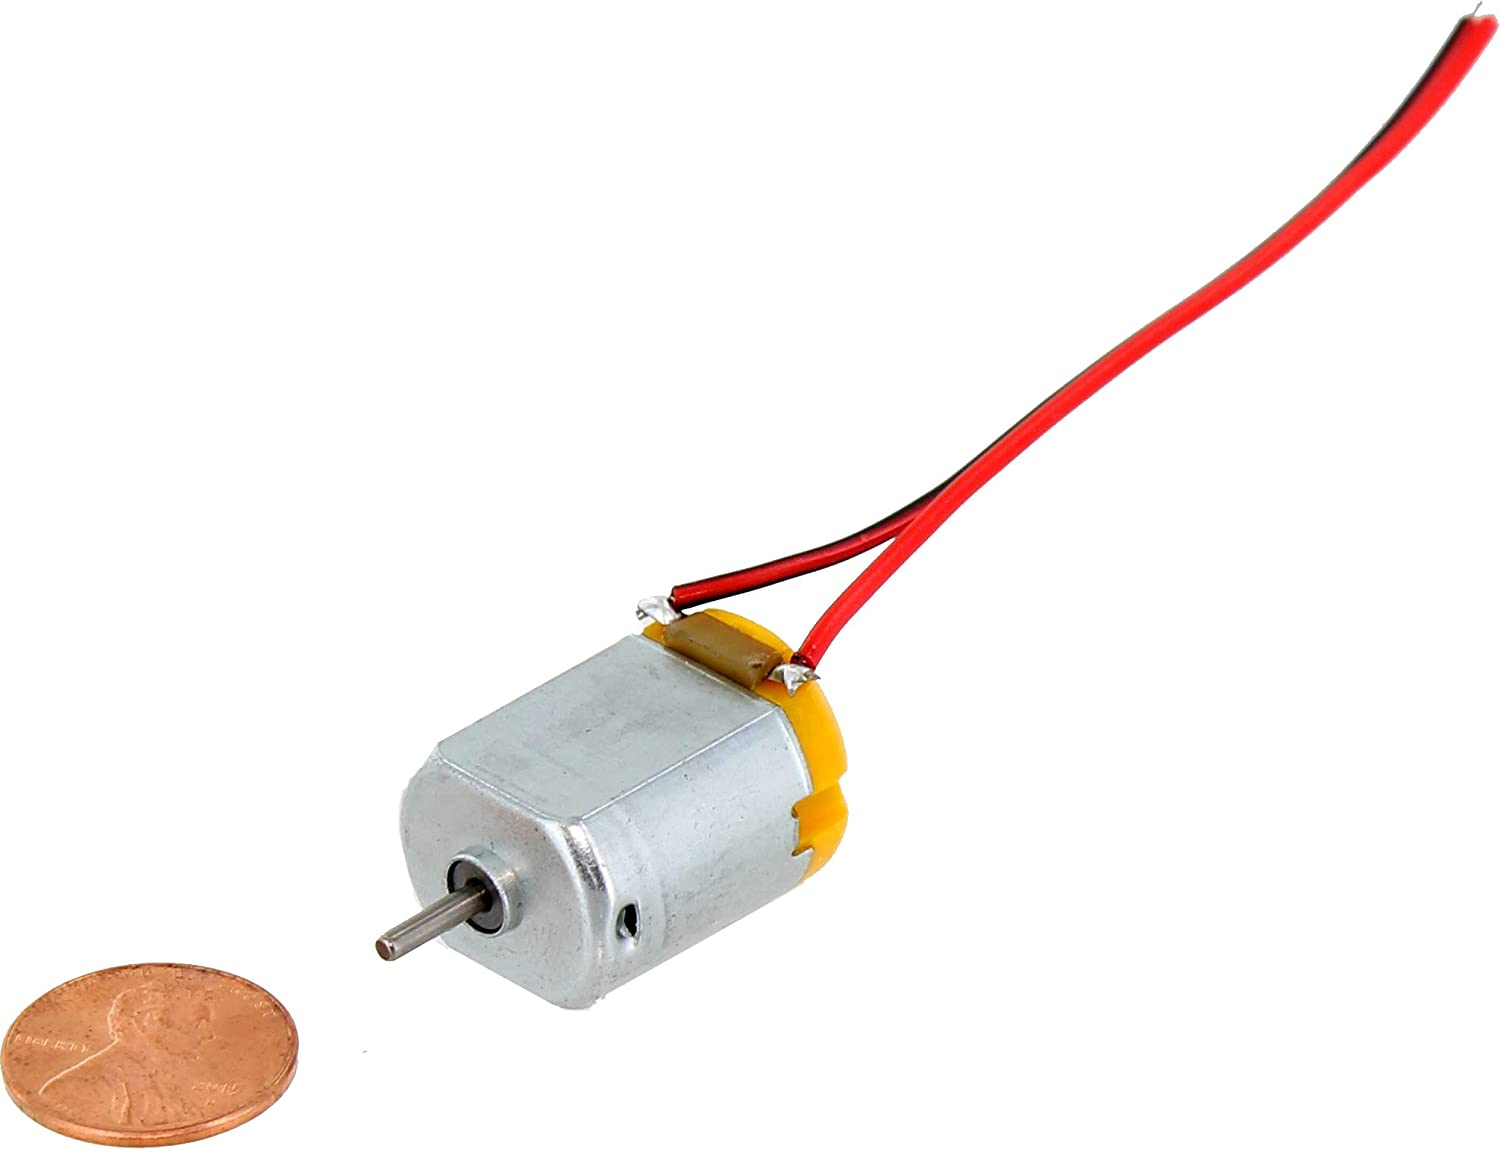 10 Pack Of Miniature Dc Motors For Hobby Projects In Addition To This Circuit We Also Recommend The Other Motor